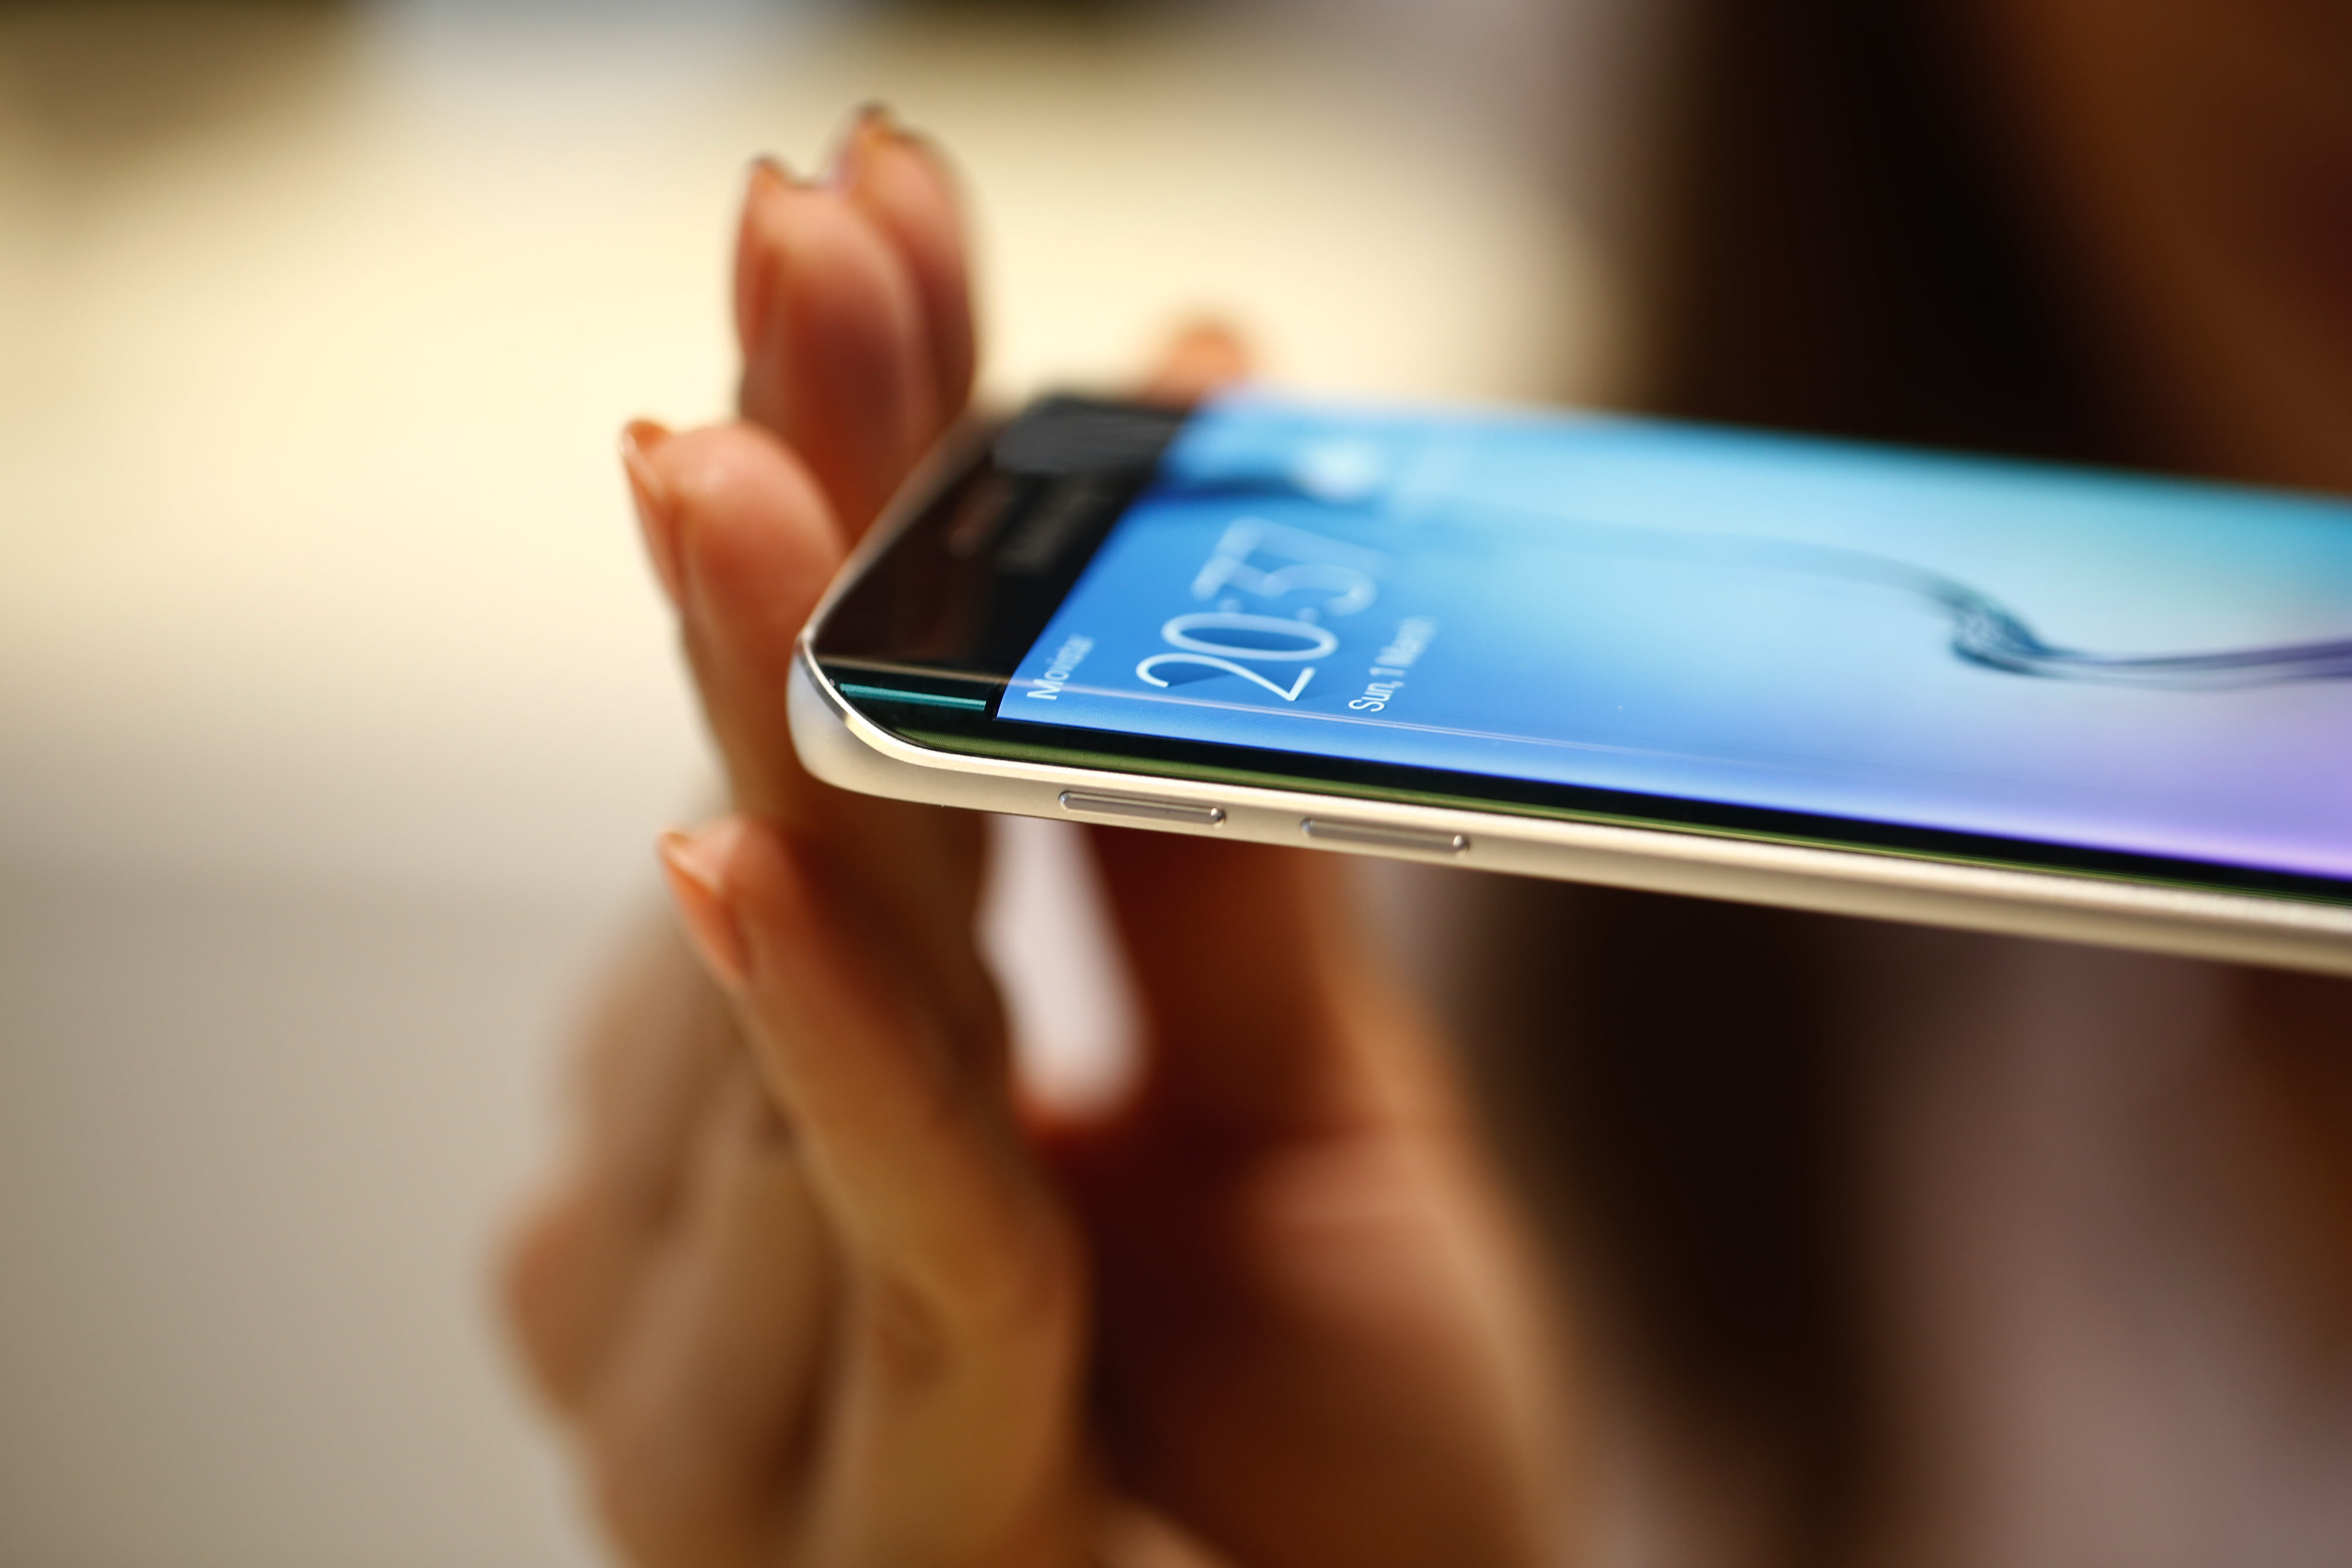 An employee shows the curved screen of a new Galaxy S6 Edge smartphone device following its launch at a Samsung Electronics Co. news conference ahead of the Mobile World Congress in Barcelona, Spain, on Sunday, March 1, 2015. The event, which generates several hundred million euros in revenue for the city of Barcelona each year, also means the world for a week turns its attention back to Europe for the latest in technology, despite a lagging ecosystem. Photographer: Simon Dawson/Bloomberg